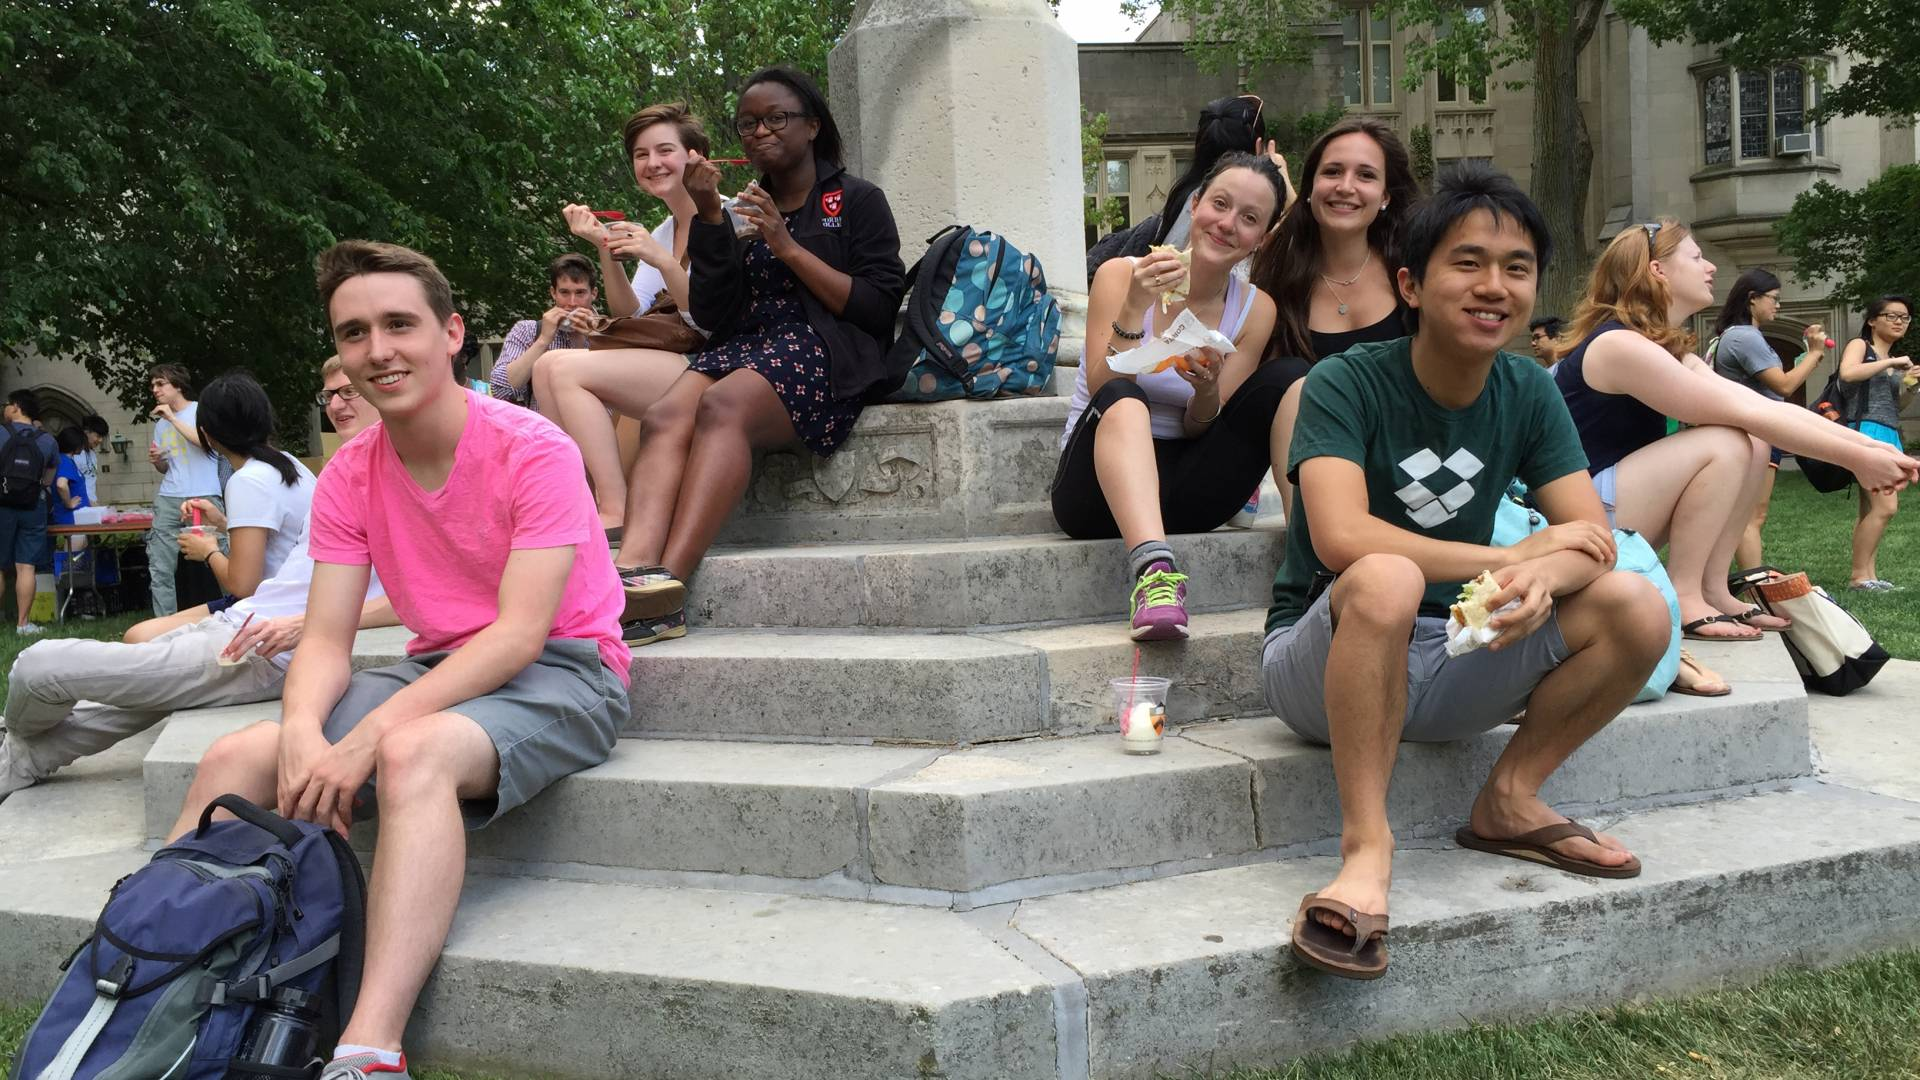 Students sitting and eating at Mather sundial